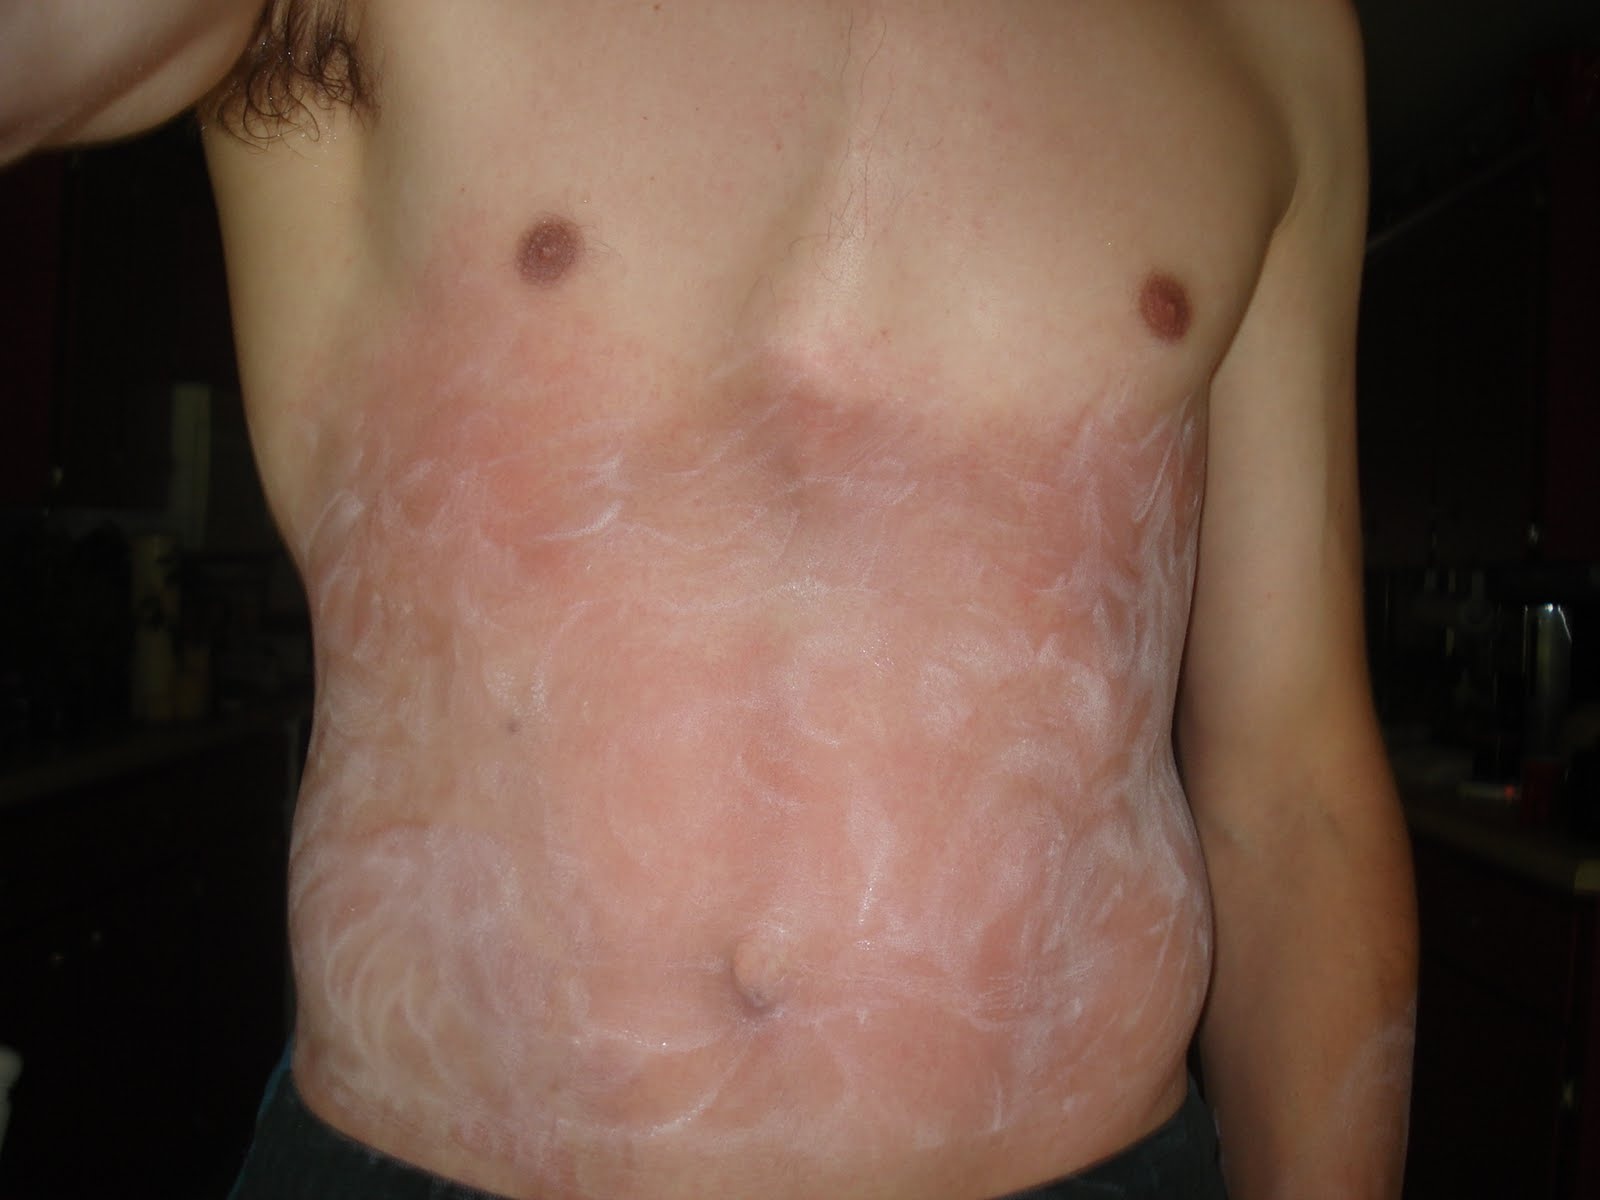 poison sumac rashes pictures